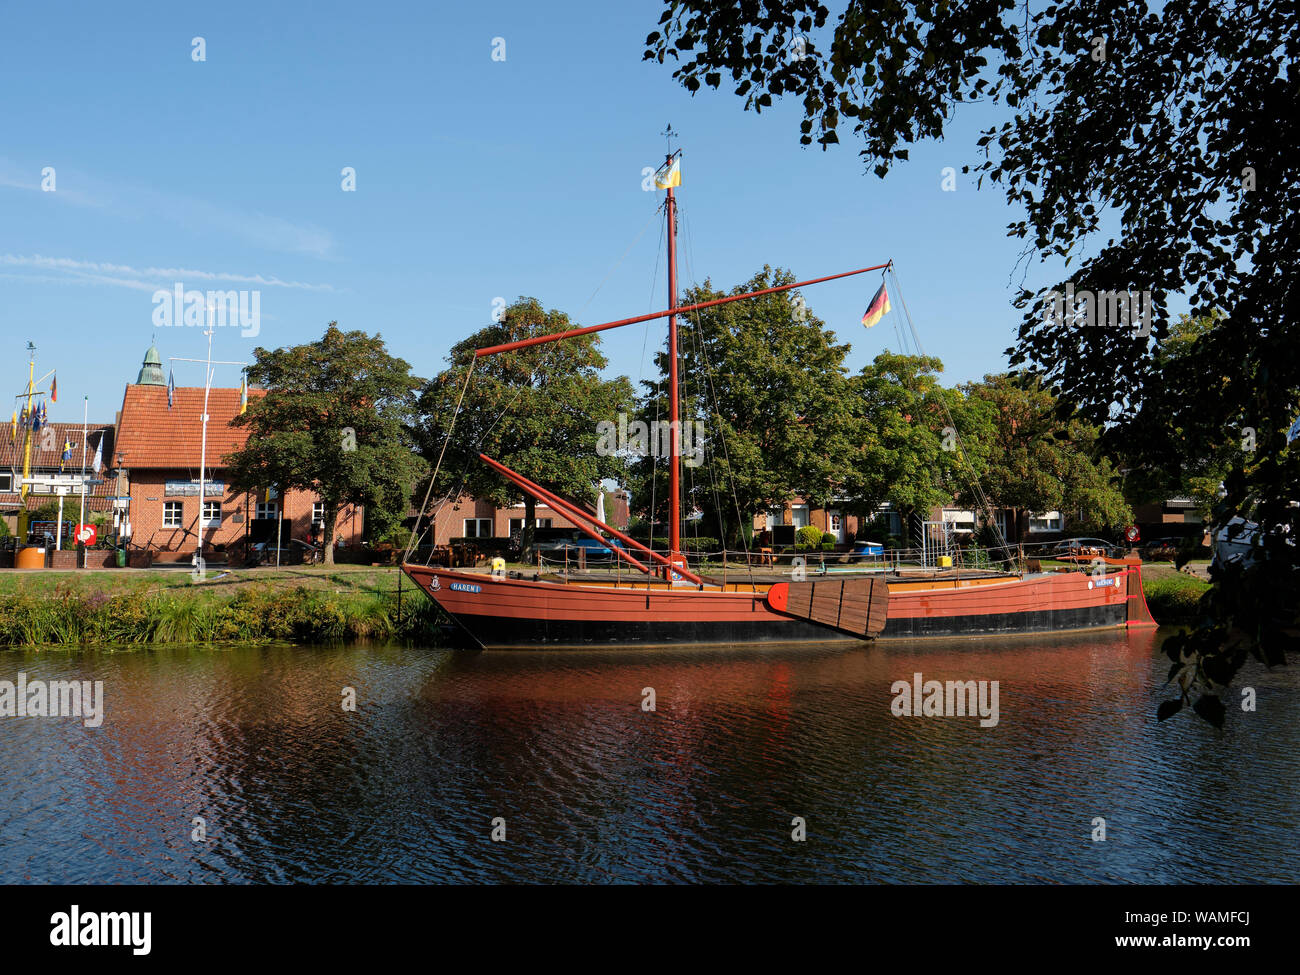 Schiffahrtsmuseum Haren - The small Maritime Museum in Haren Germany with moored historic barges on the Haren Rutenbrock canal in Lower Saxony. Stock Photo